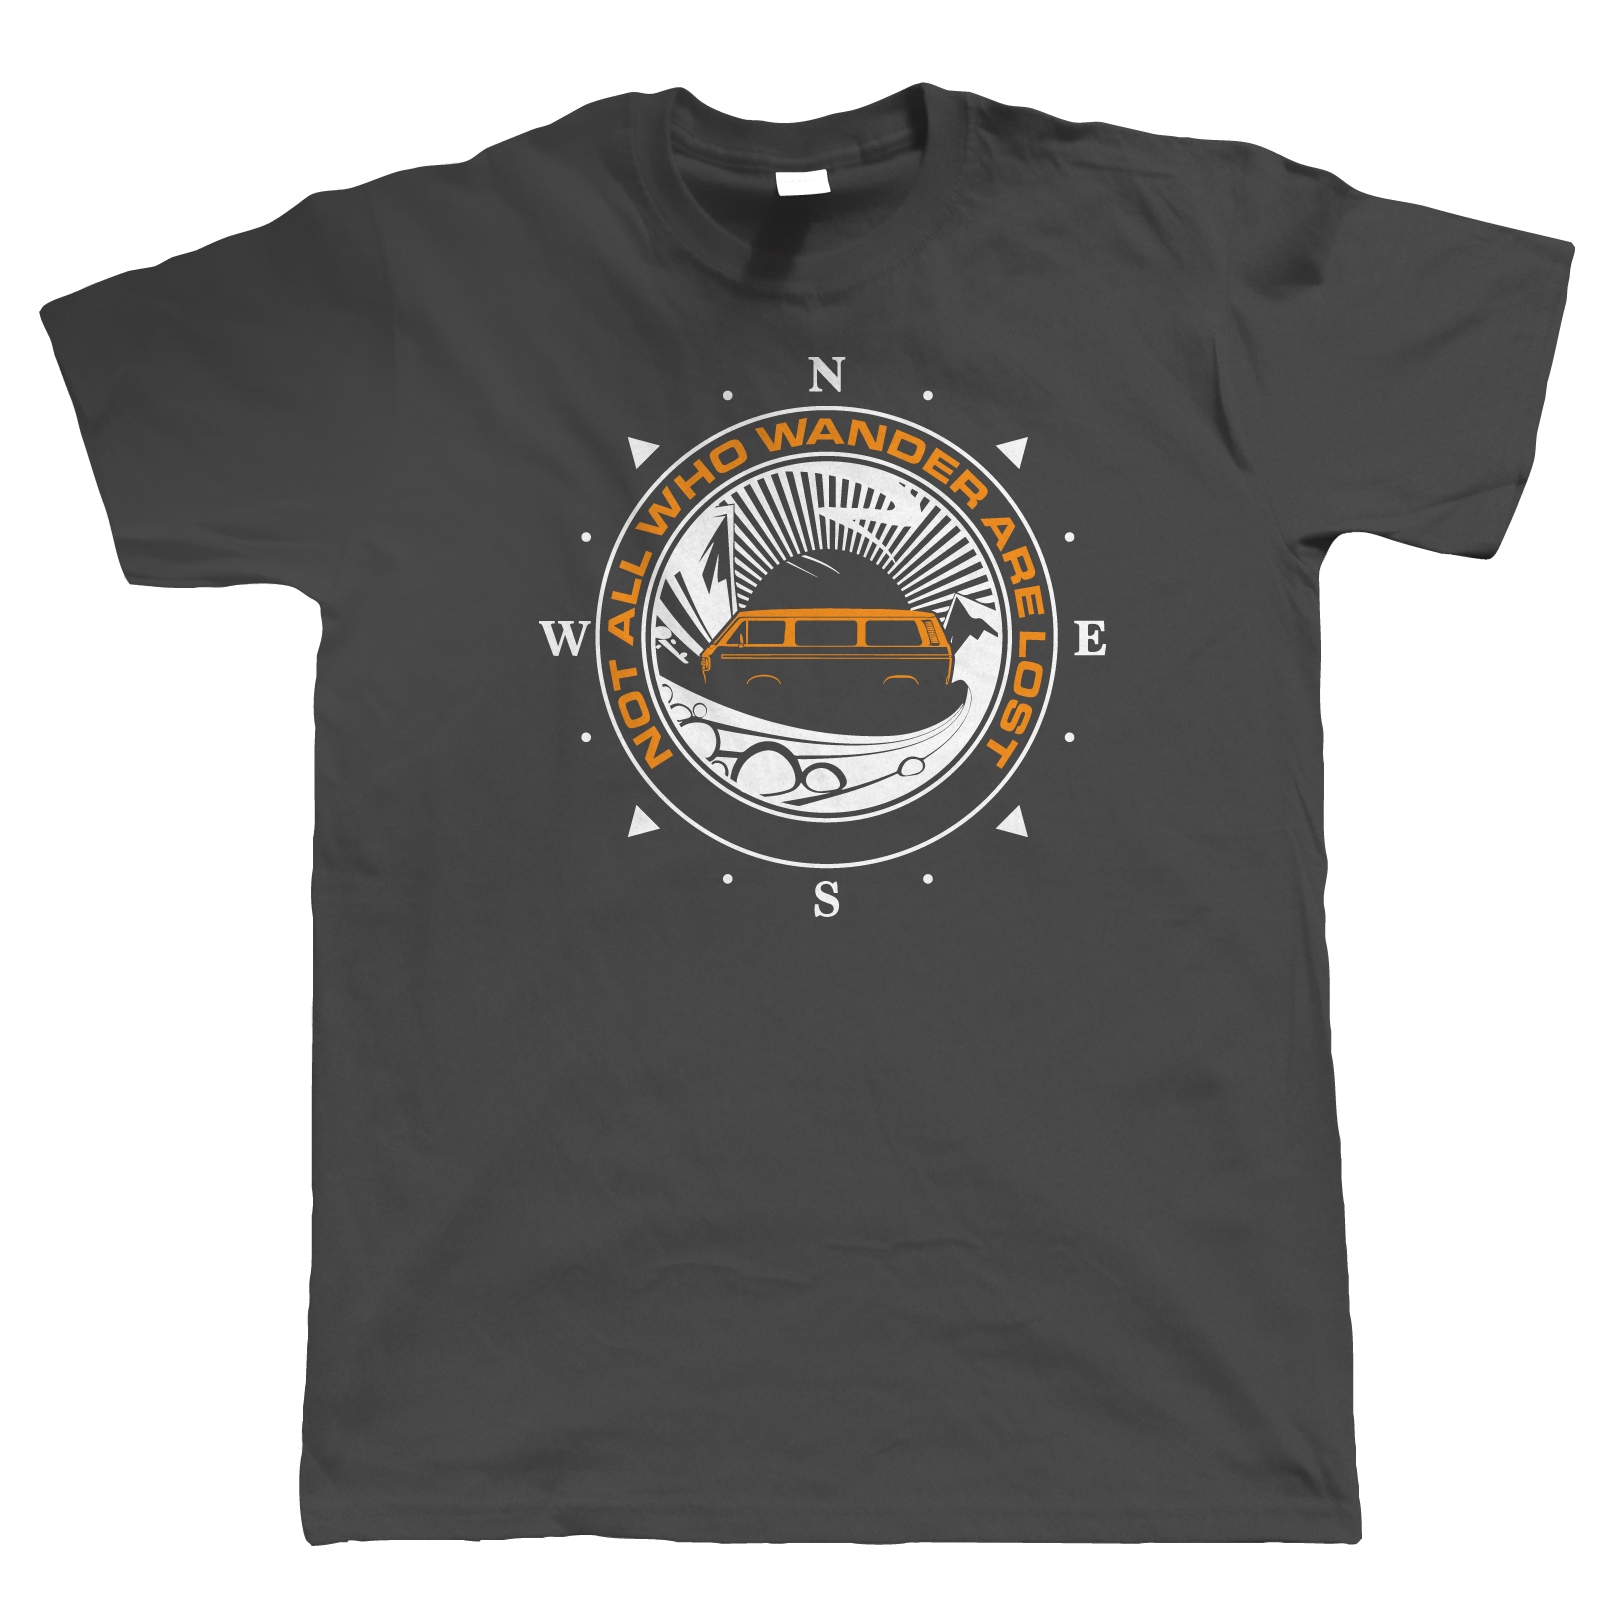 Not All Who Wander Are Lost Campervan T Shirt, T25 Campinged Gift for Him Dad